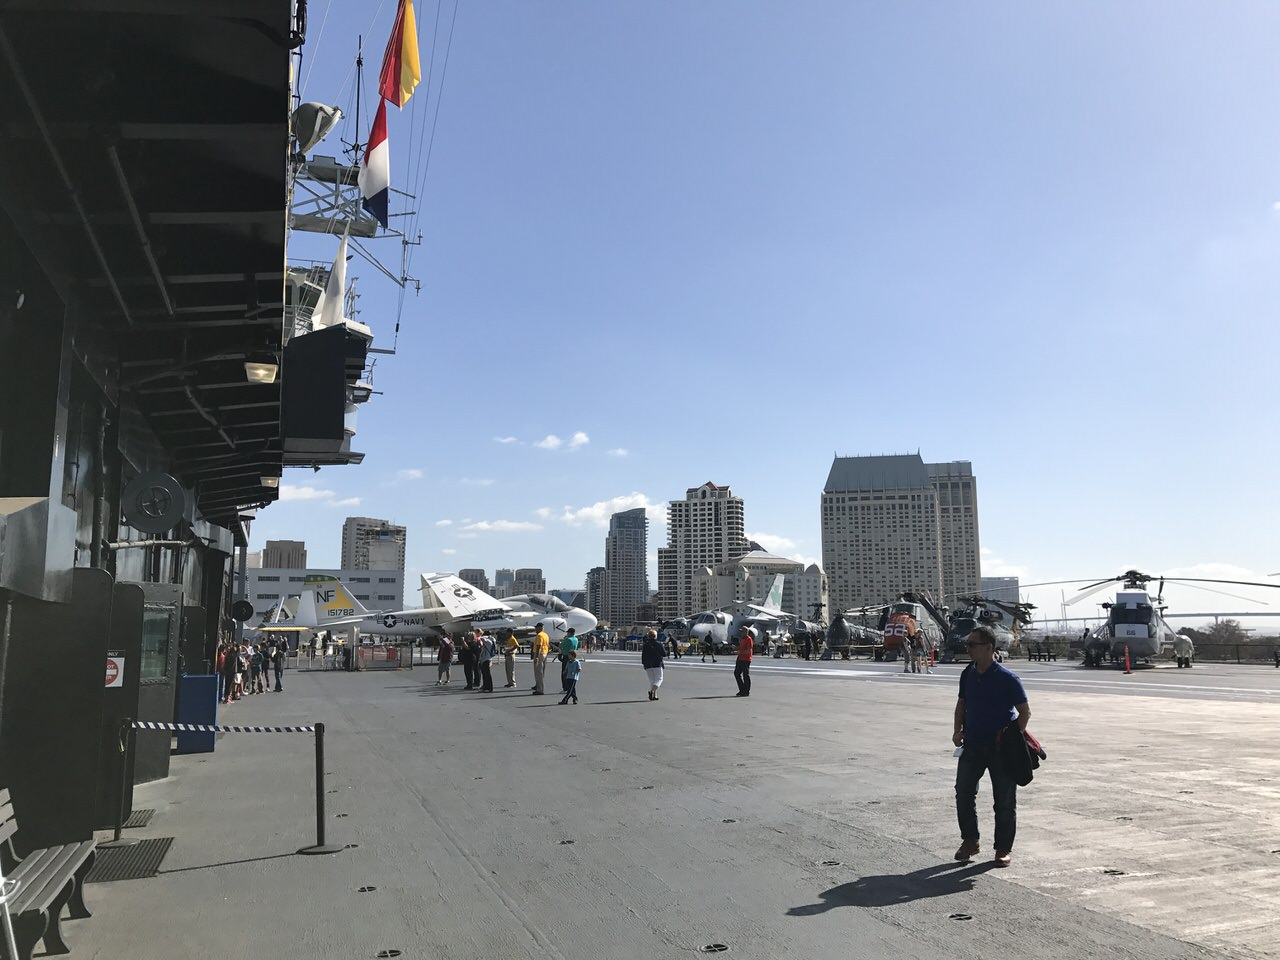 Uss midway museum 0615